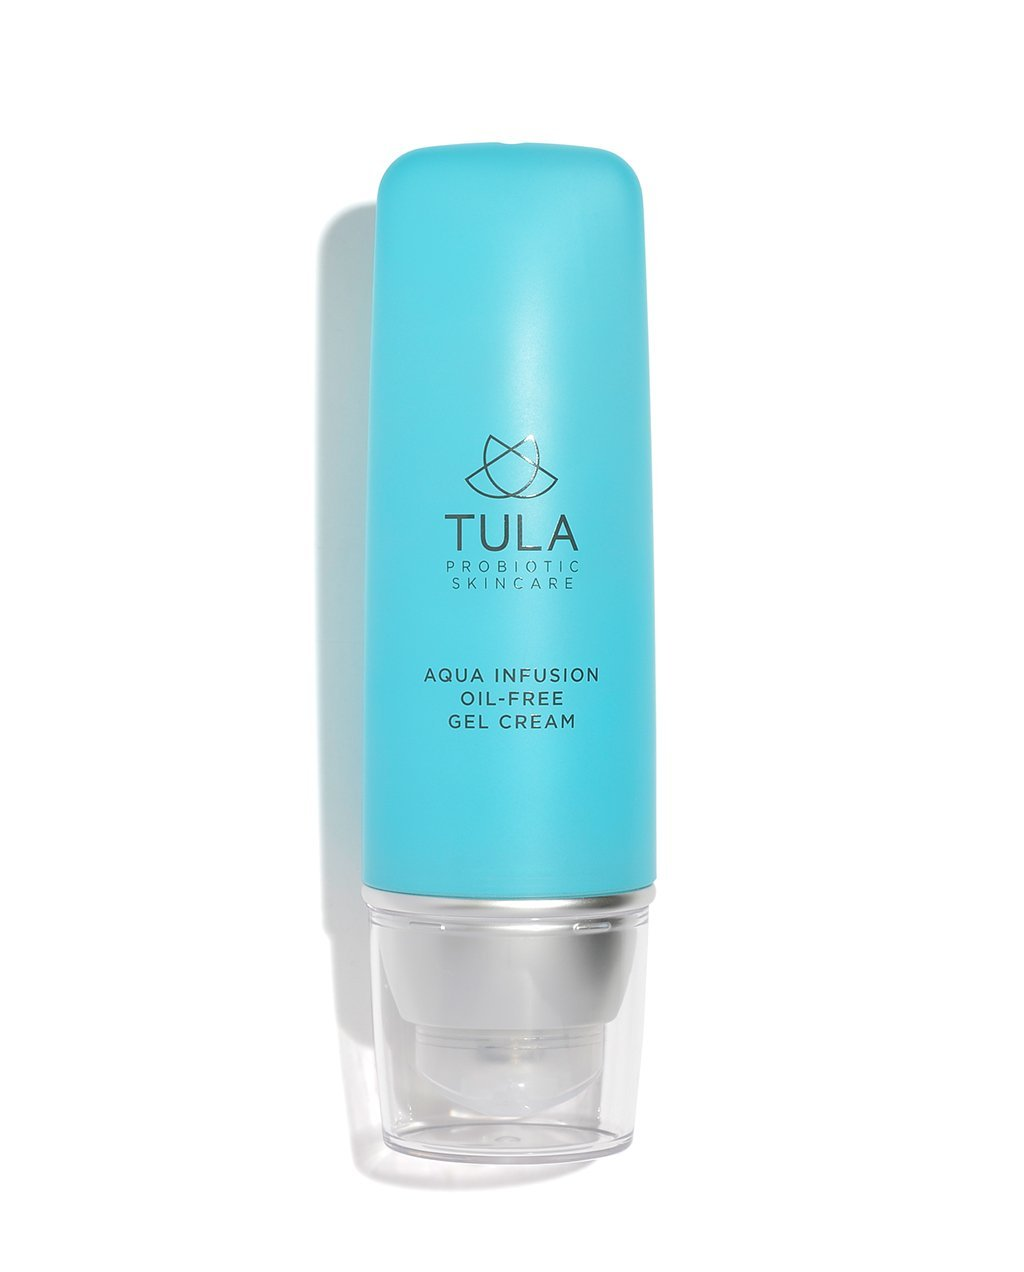 TULA Probiotic Skin Care Aqua Infusion Oil-Free Gel Cream, Lightweight Water Cream with Superfoods and Prickly Pear Extract, 1.7 oz.